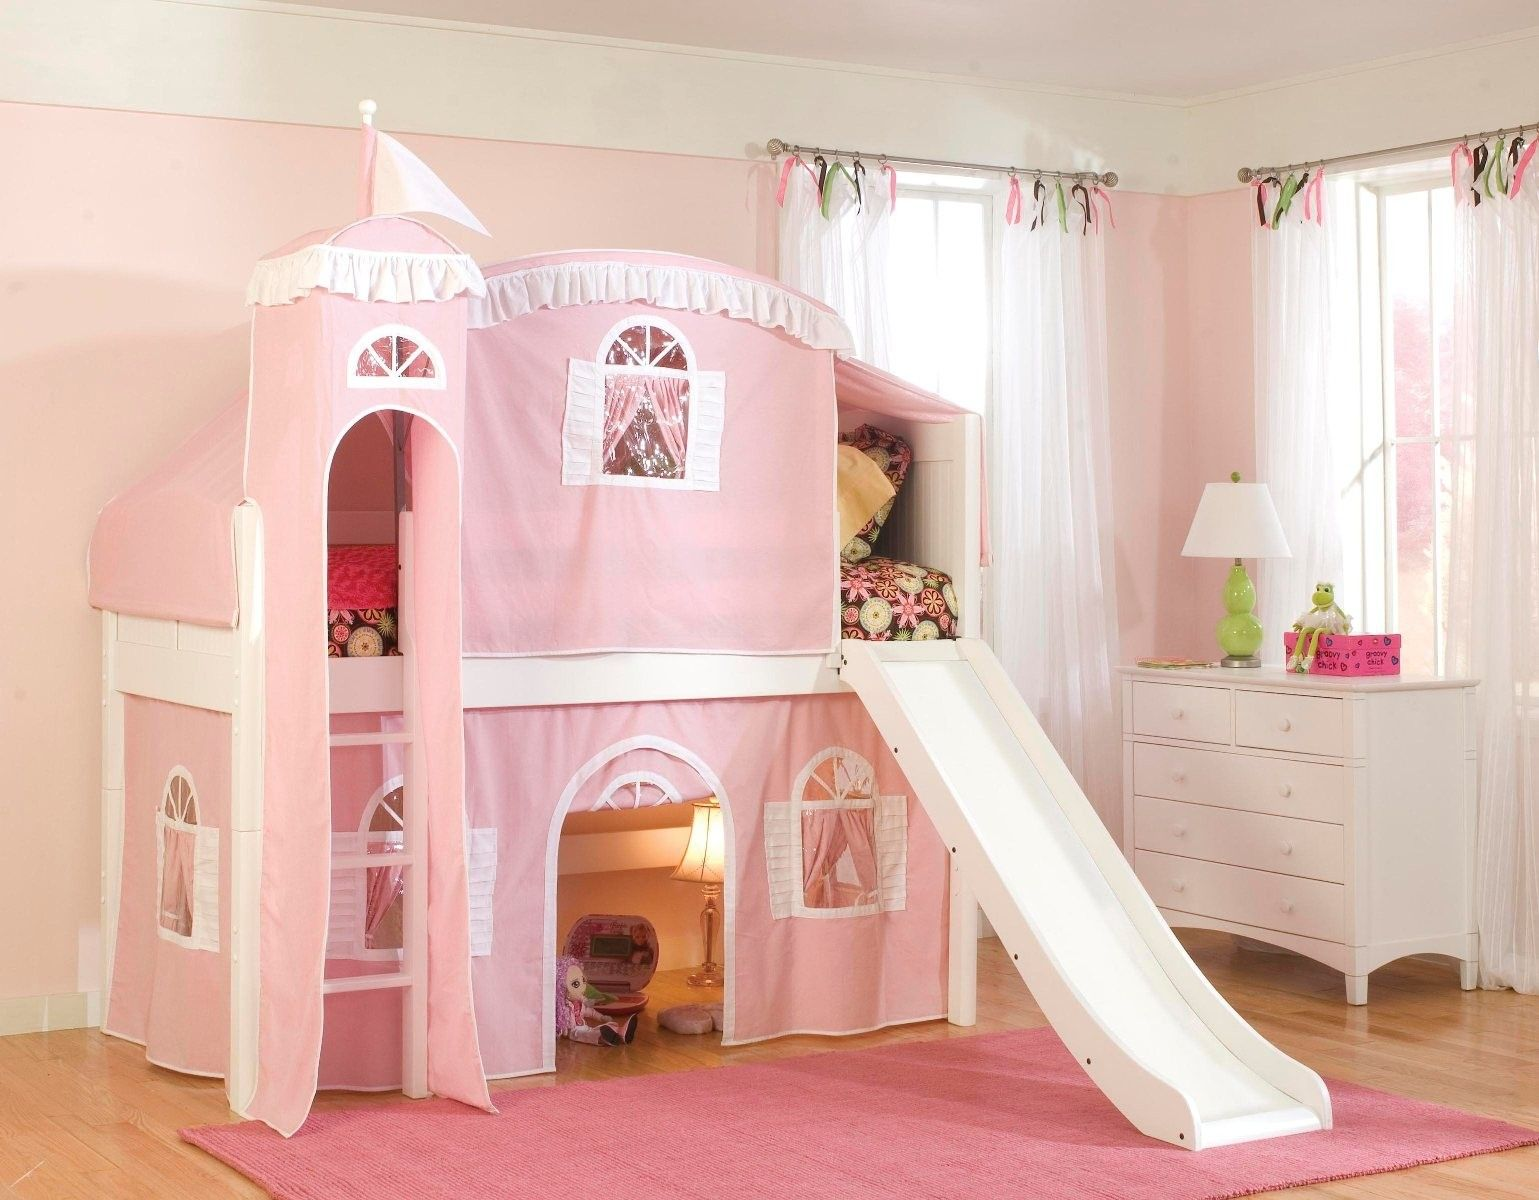 Treat Your Little Queen With Princess Bunk Bed With Slide In 2020 Loft Bed Low Loft Beds Castle Bed